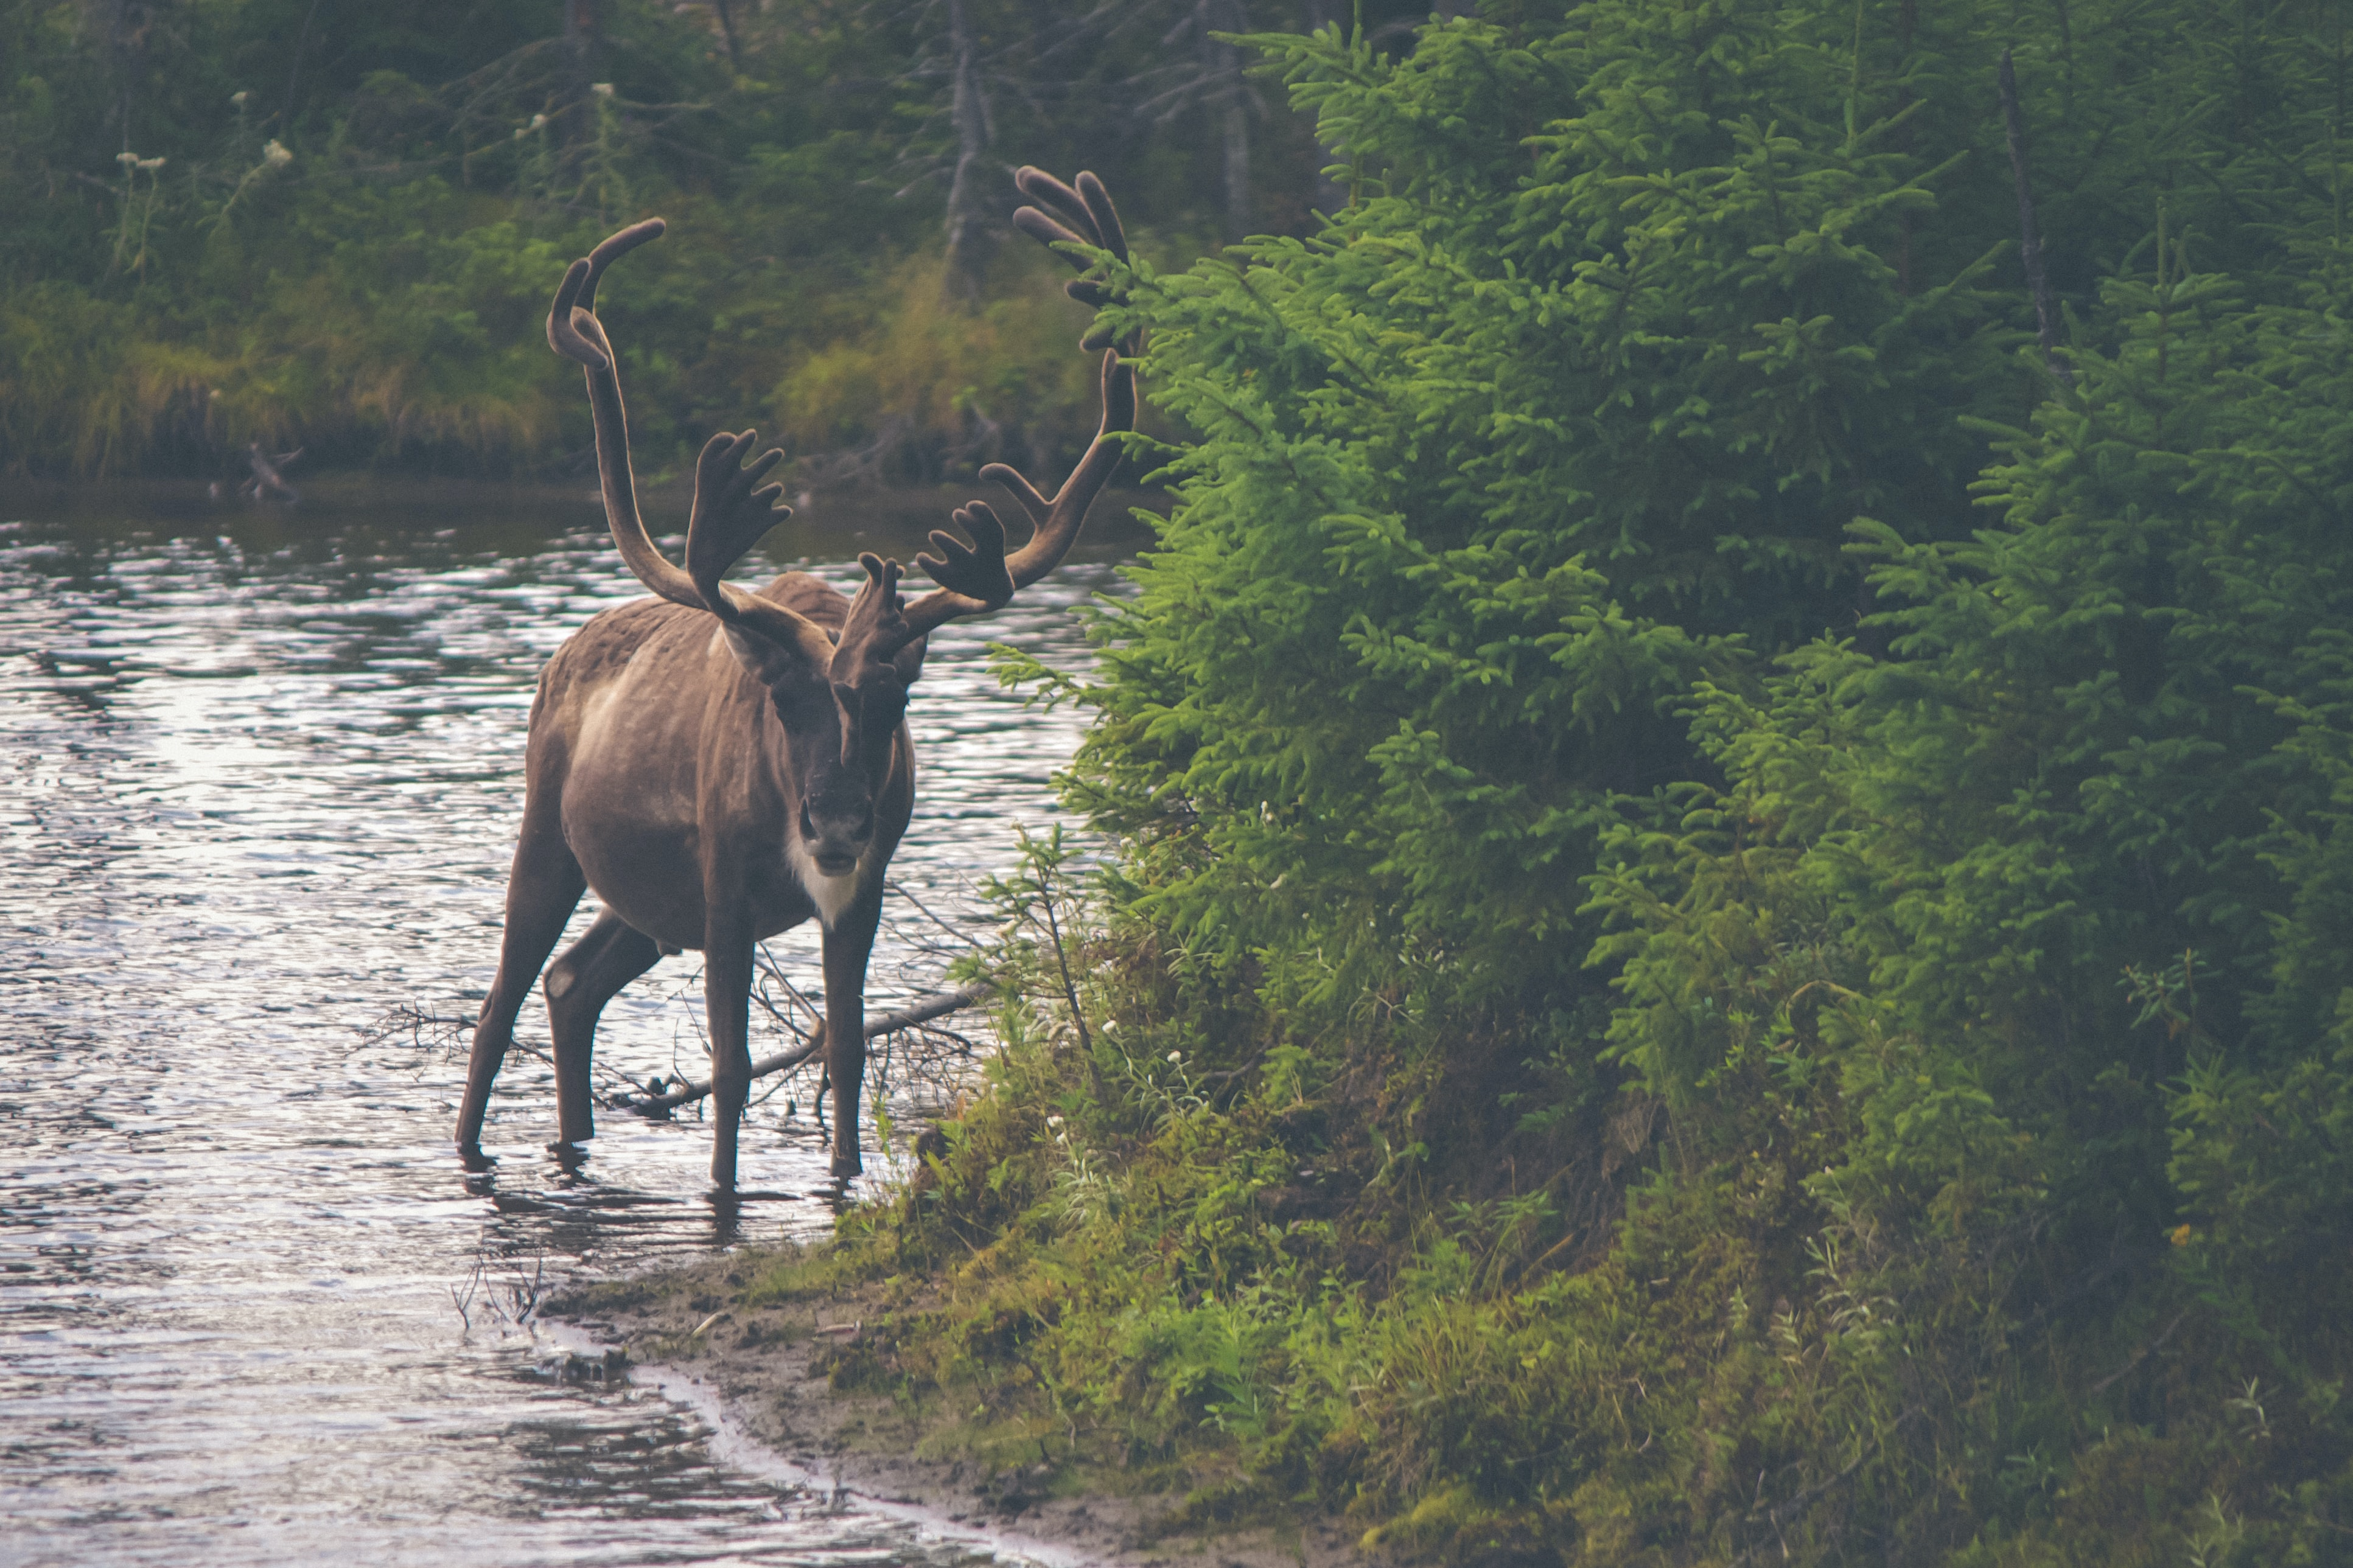 A reindeer wading in a shallow stream near a tuft of conifers